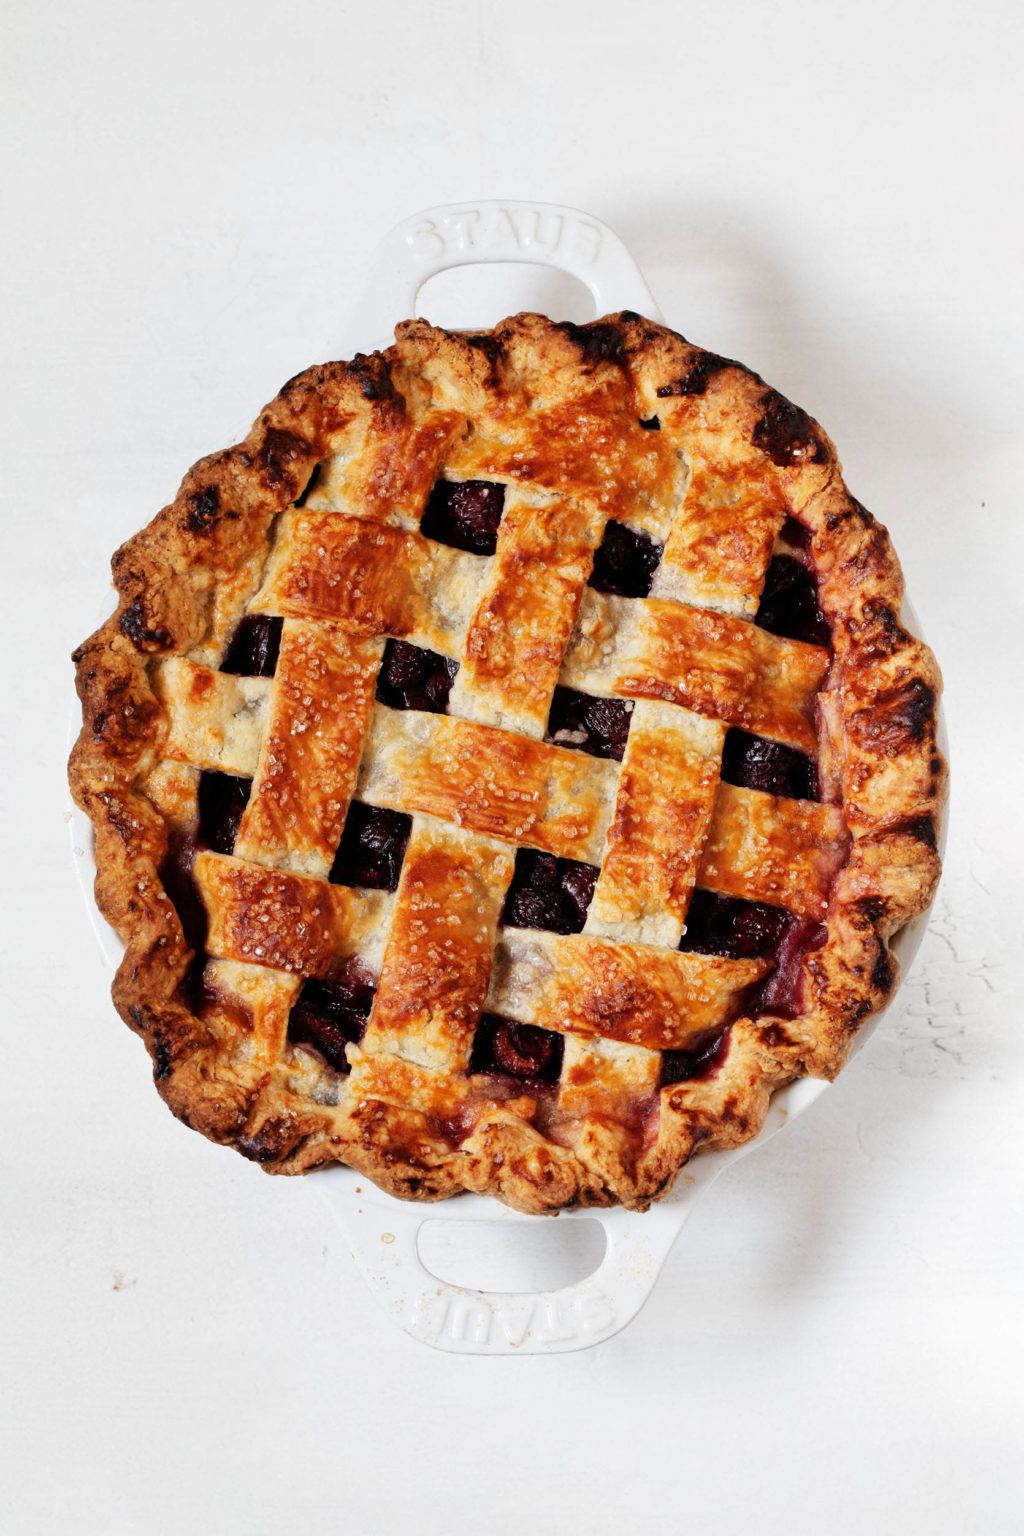 A dark golden, freshly baked fruit dessert with a lattice top crust is resting in a white round baking dish.